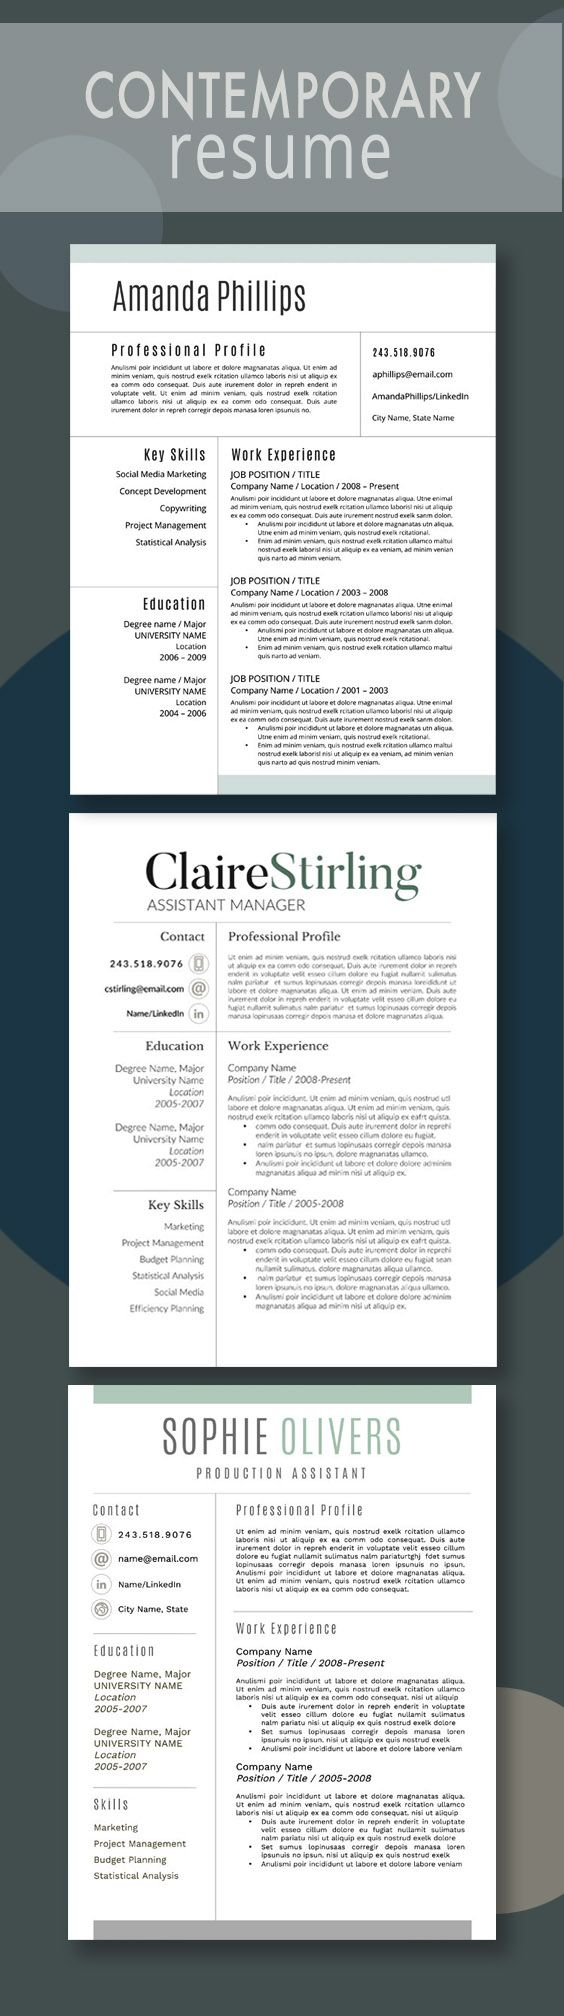 17 best ideas about resume templates resume resume super happy my resume template great service easy to use microsoft word